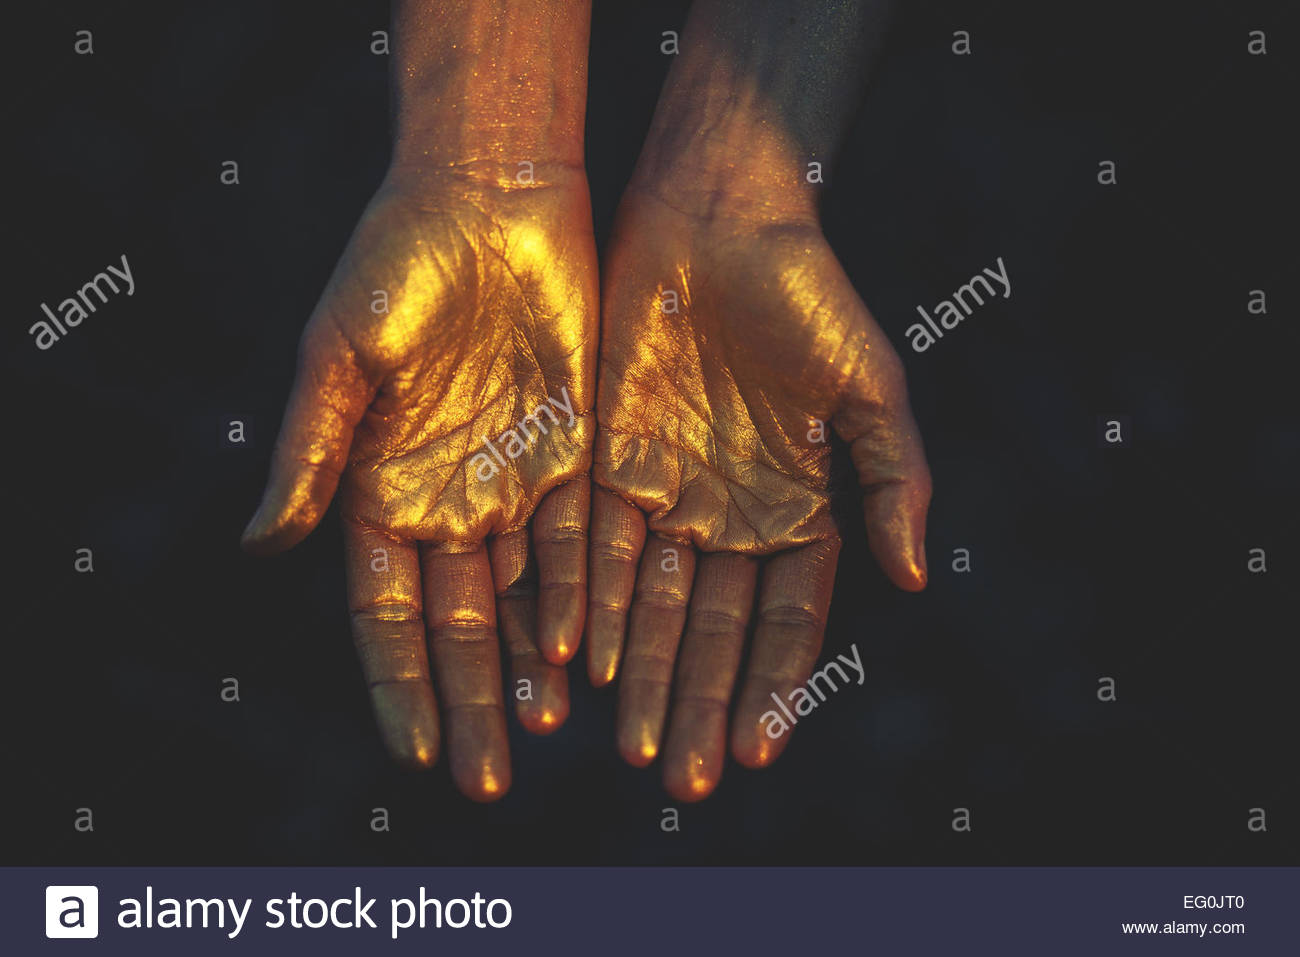 Close-up of woman's hands in cold color - Stock Image